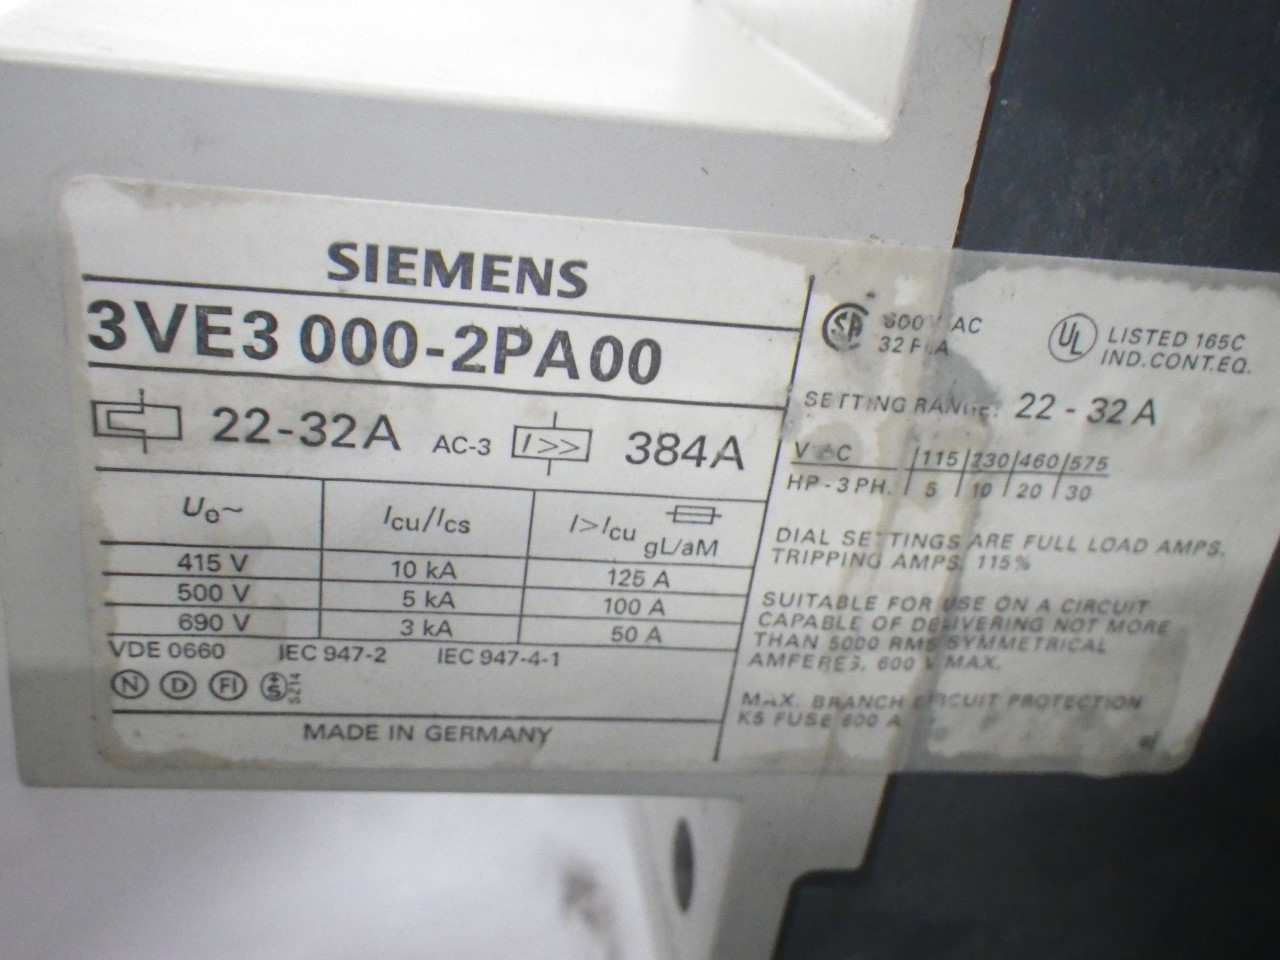 IMGP68893VE3-000-2PA00Siemens 3ve3-000-2pa00 Starter Protector 22-32a (Used Tested) (12)